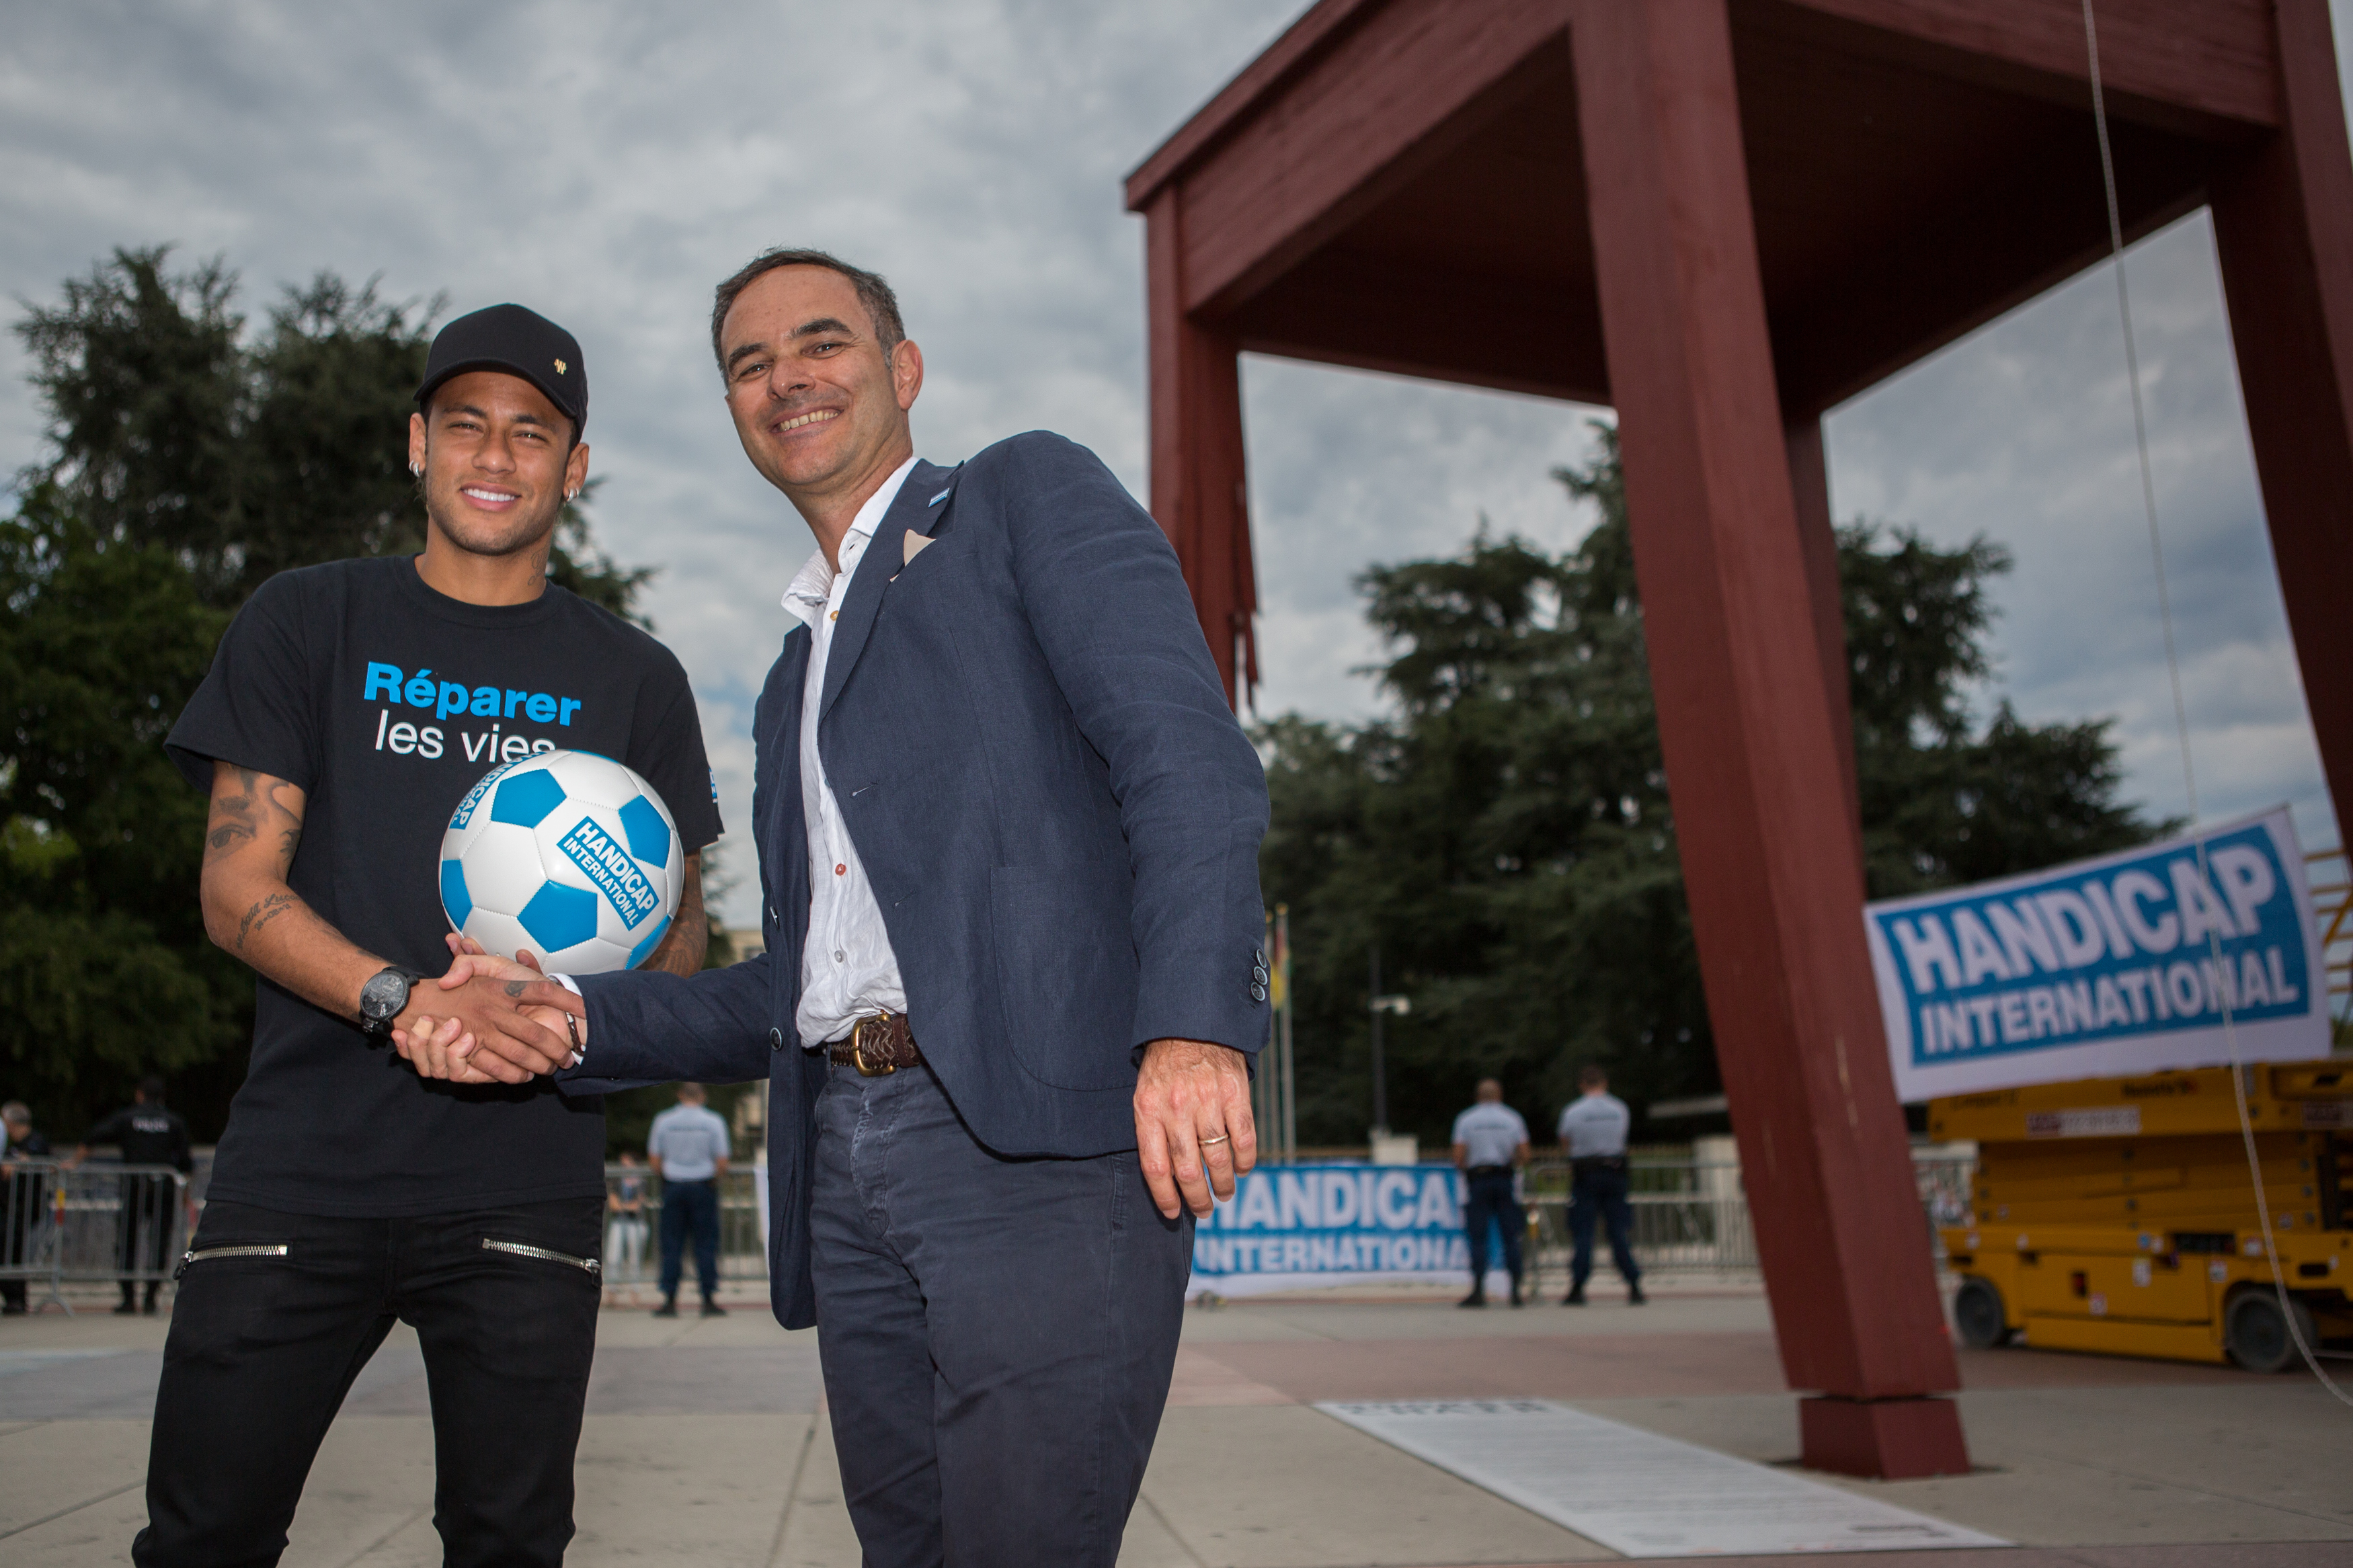 Neymar Jr becomes Handicap International ambassador